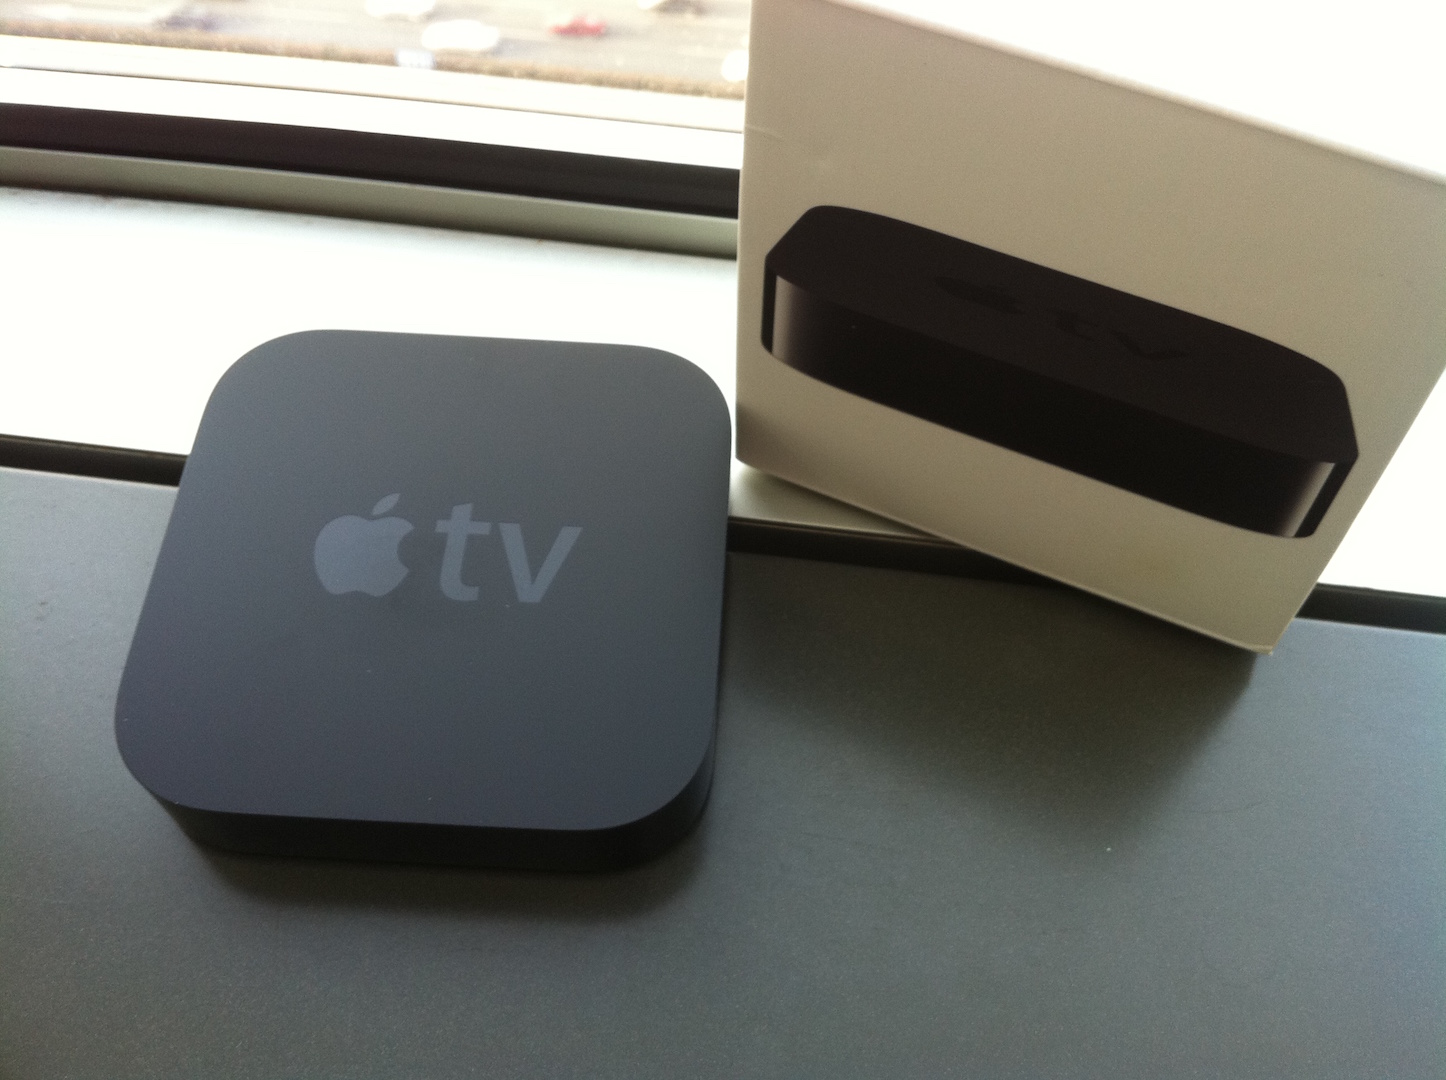 Apple tv old version